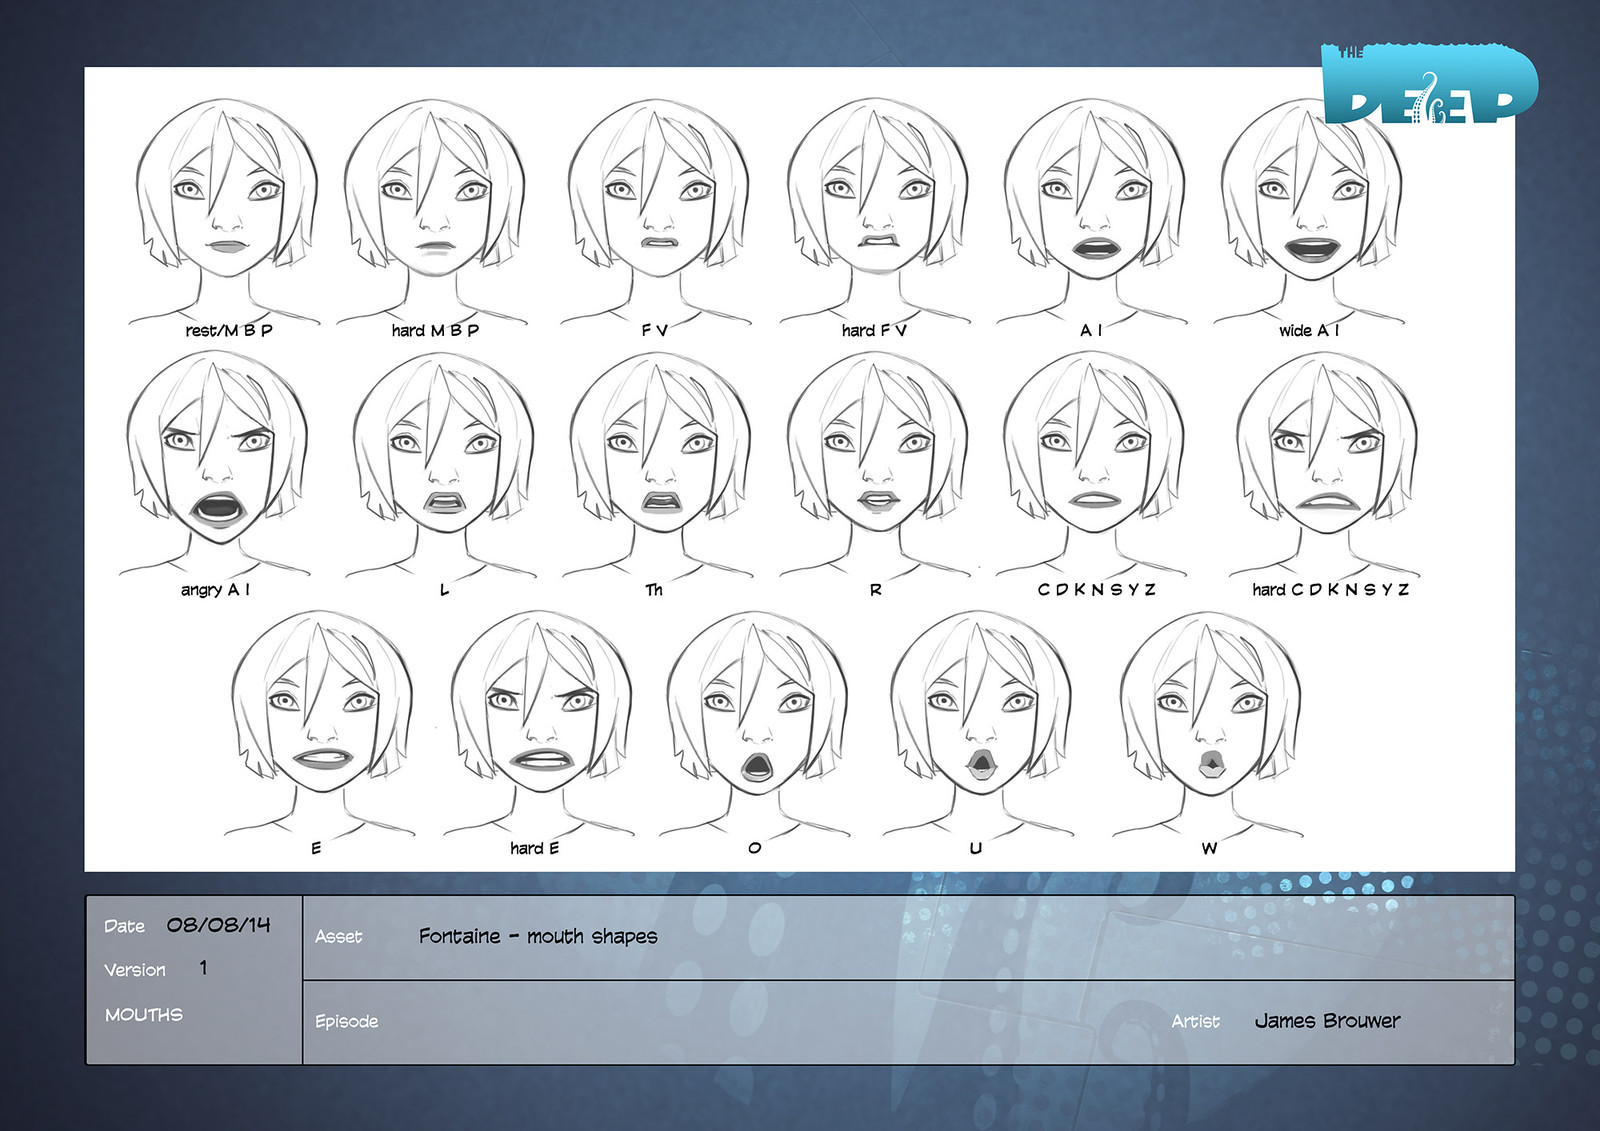 Animators' mouth shape guide for Fontaine.